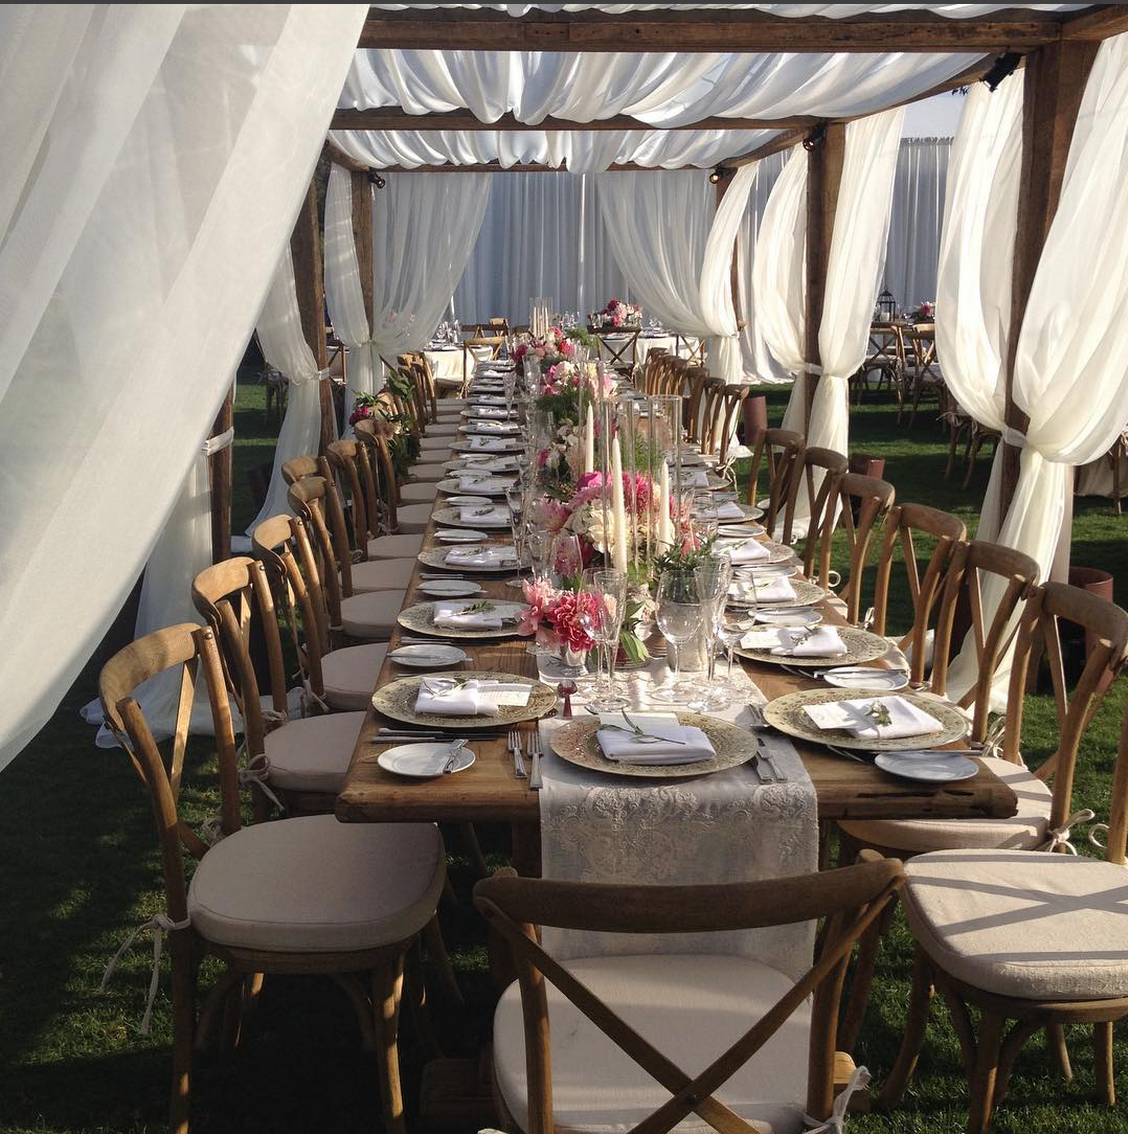 Location Chaises Reception Outdoor Reception Unreal Team Table Setup White Tent Chiffon